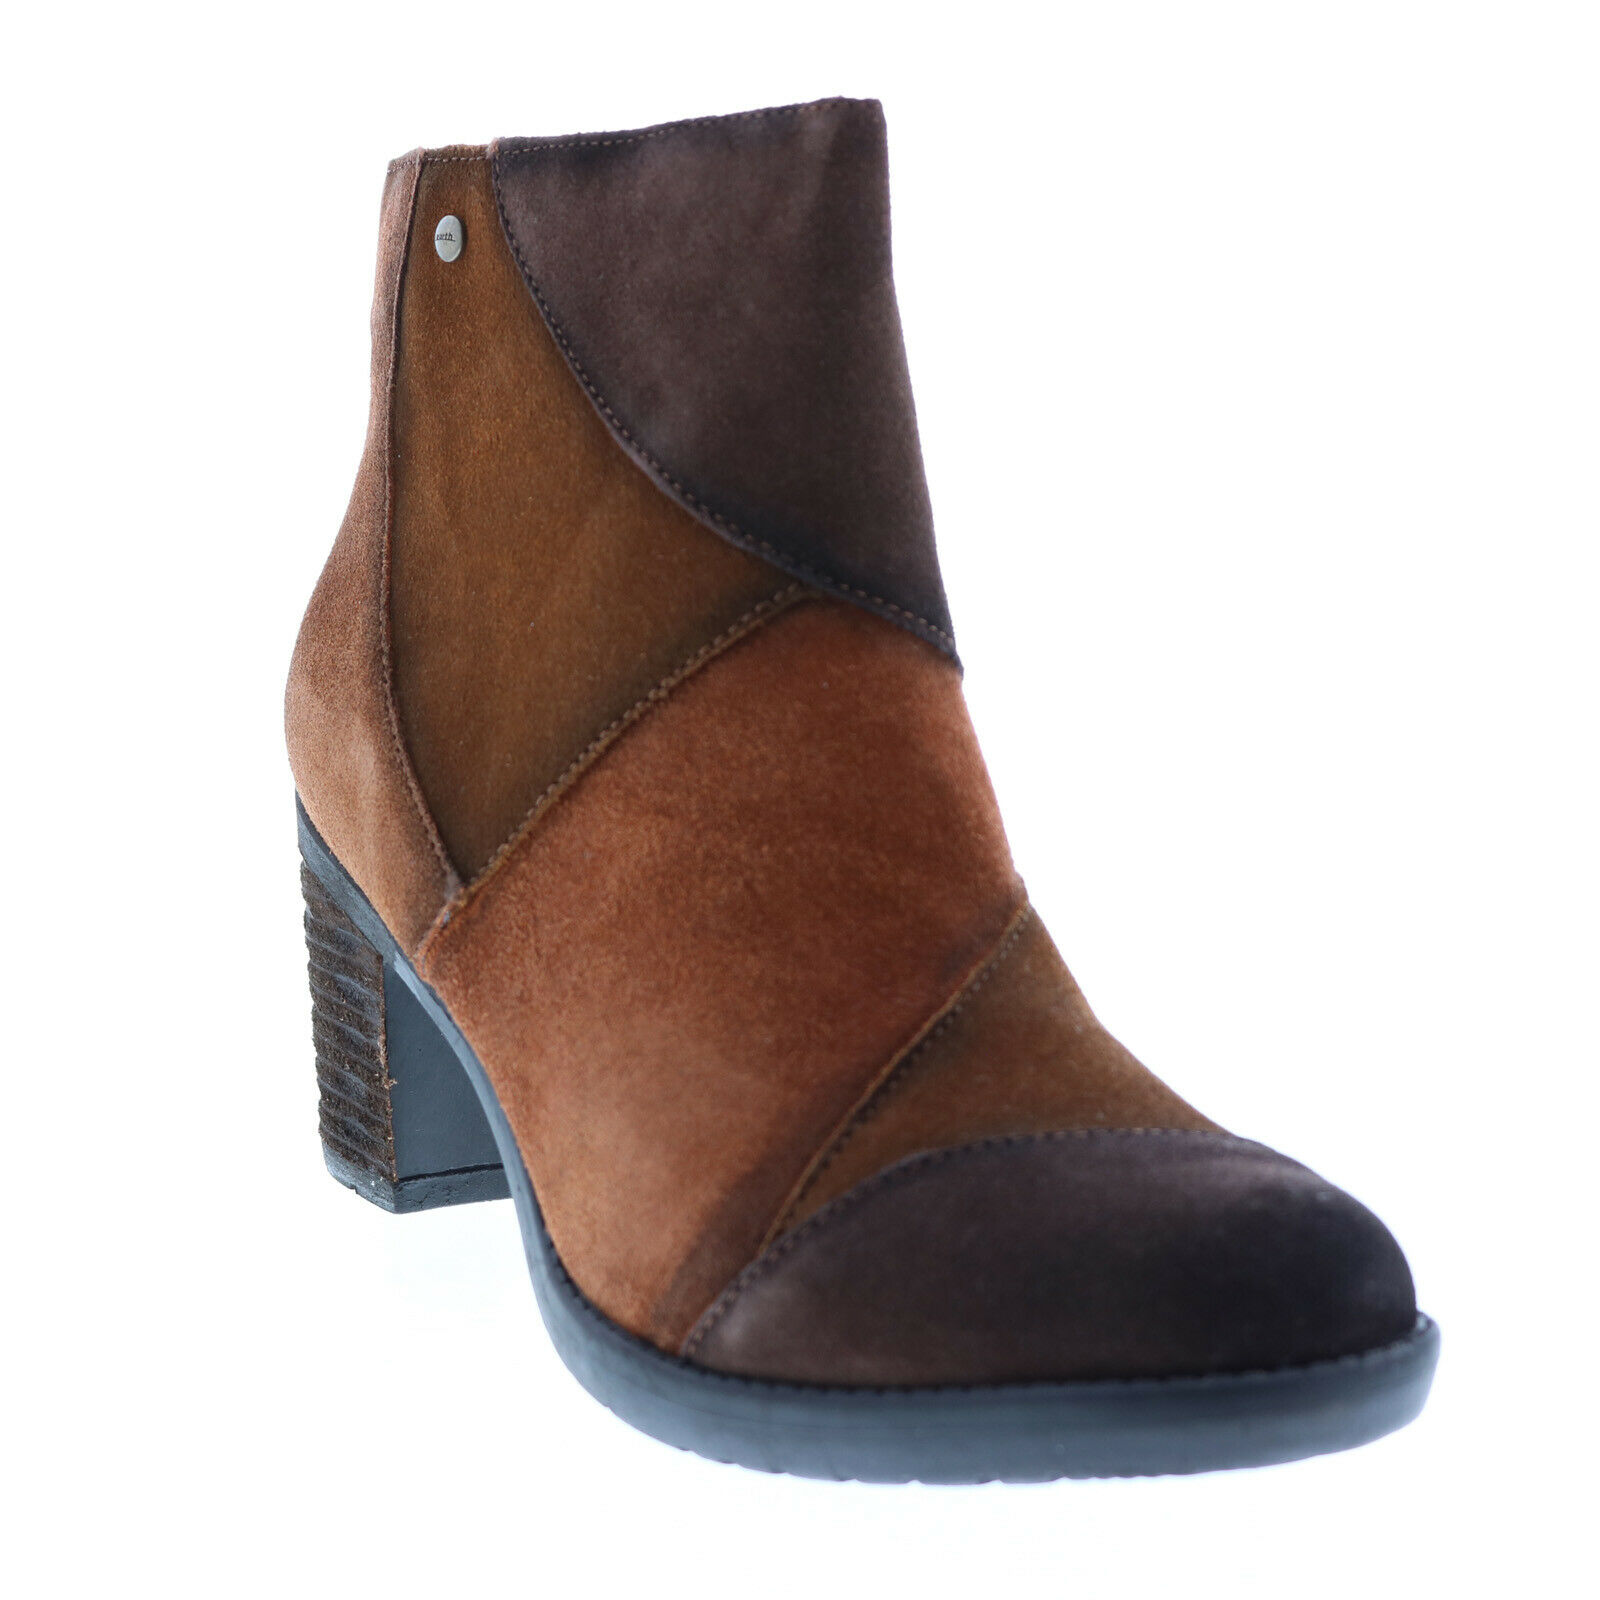 Earth Malta Multi Short Womens Brown Suede Zipper Ankle & Booties Boots 9.5